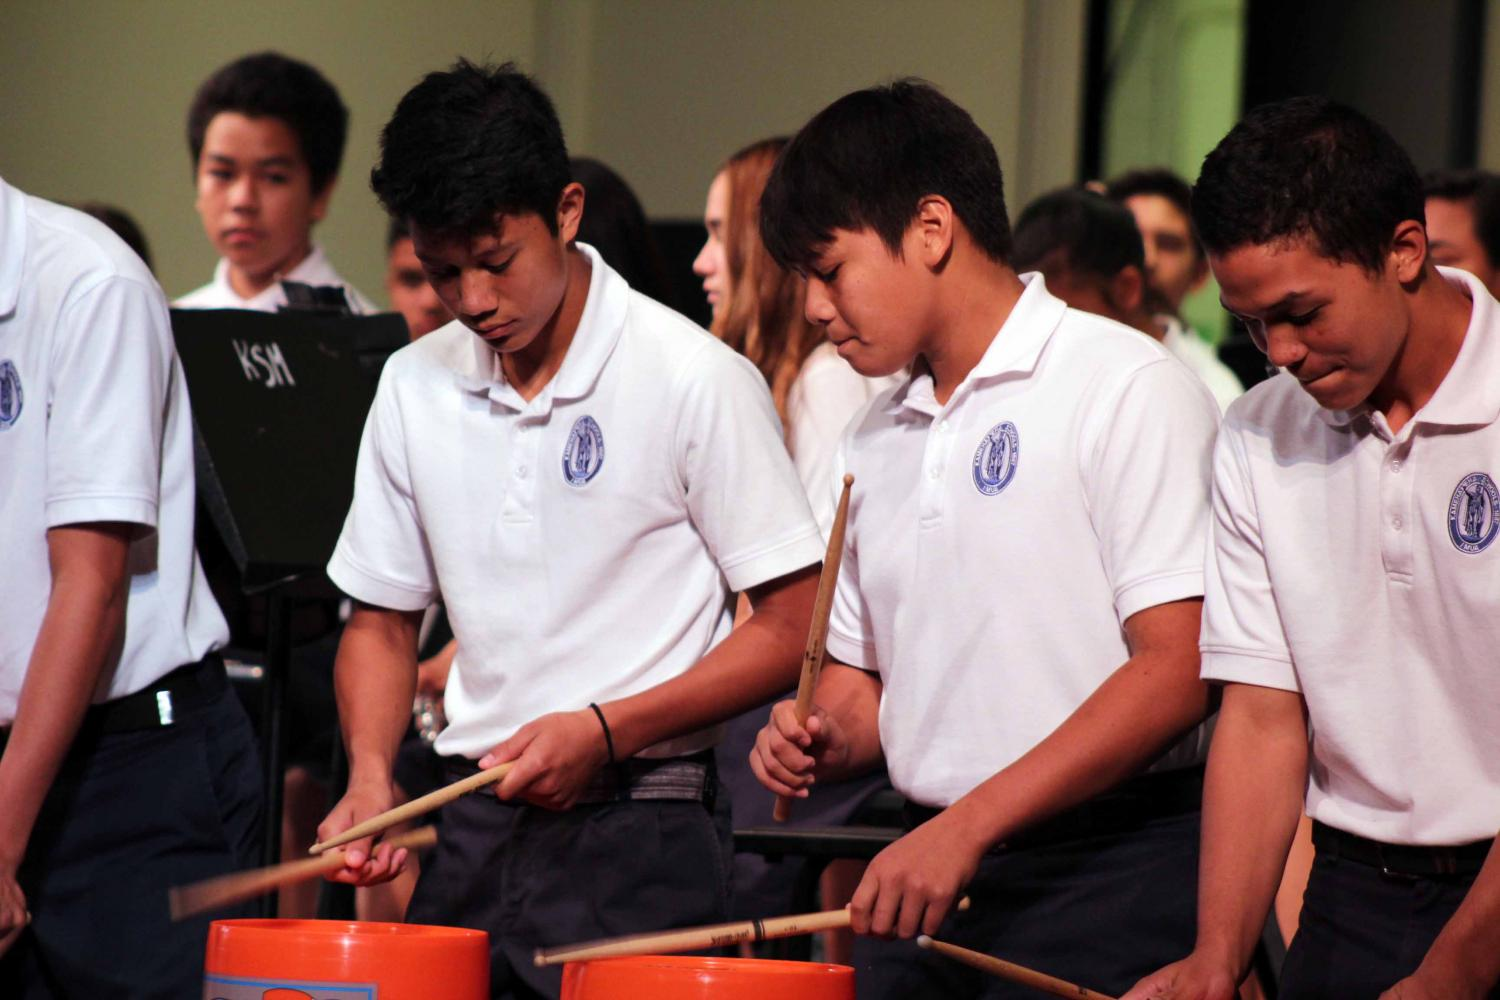 Eighth+grade+percussion+band+members+kneel+in+front+of+the+audience+and+perform+using+buckets.